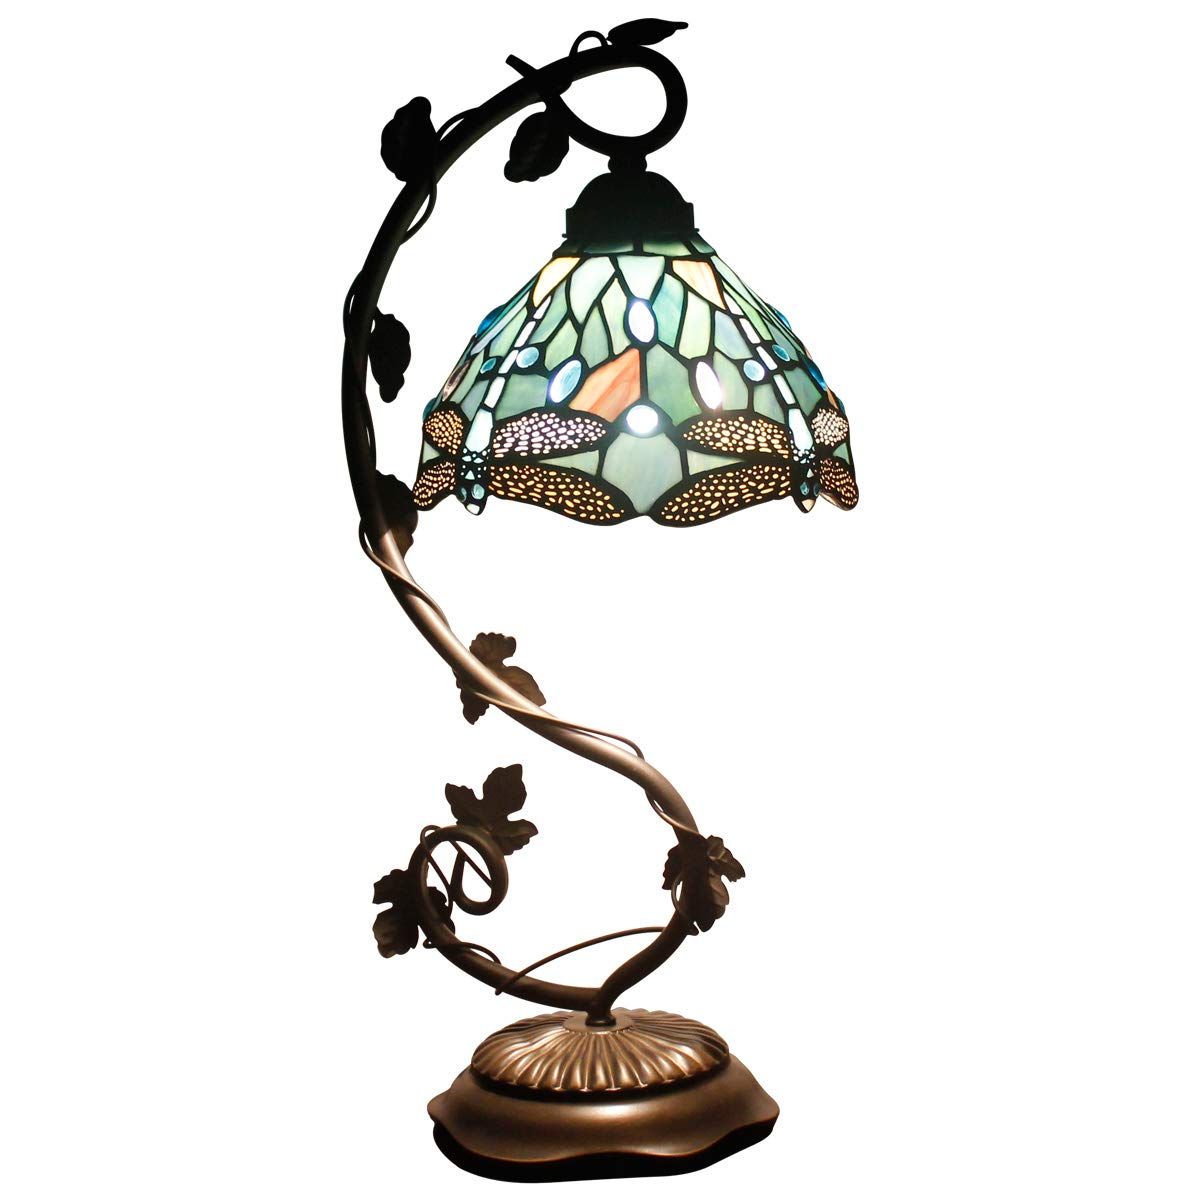 Tiffany Lamps Stained Glass Table Desk Reading Lamp Crystal Bead Sea Blue Dragonfly Style Shade W8H22 Inch for Living Room Bedroom Bookcase Dresser Coffee Table S147 WERFACTORY